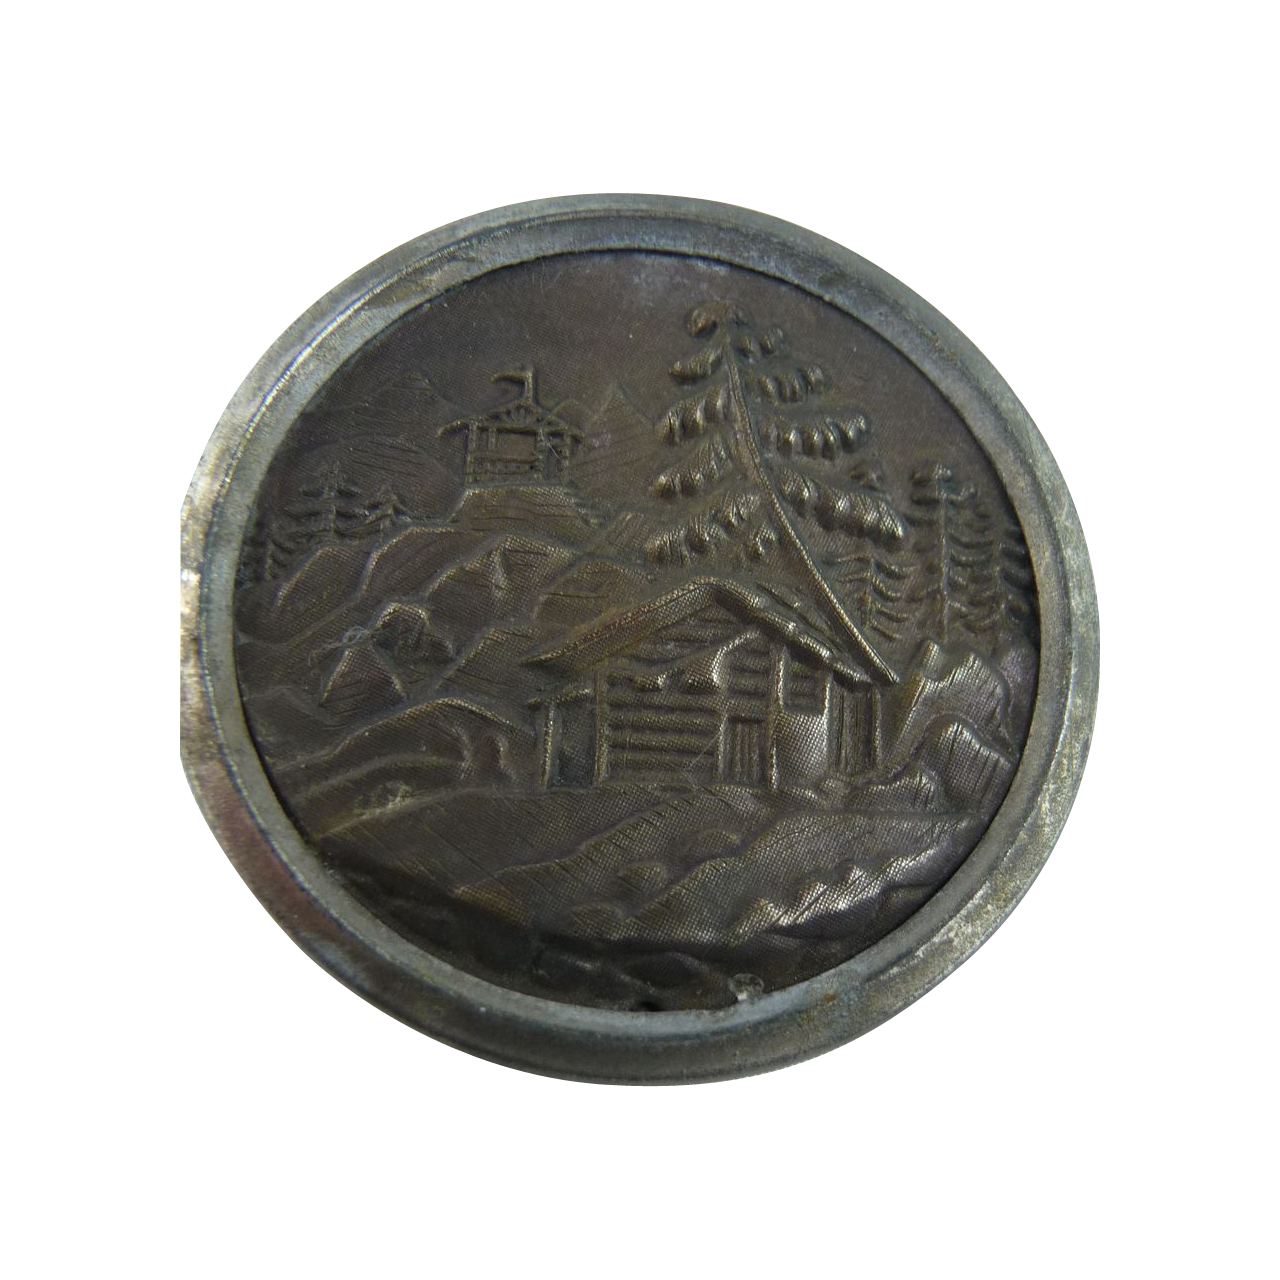 Vintage Button of Heidi's Cabin in The Woods